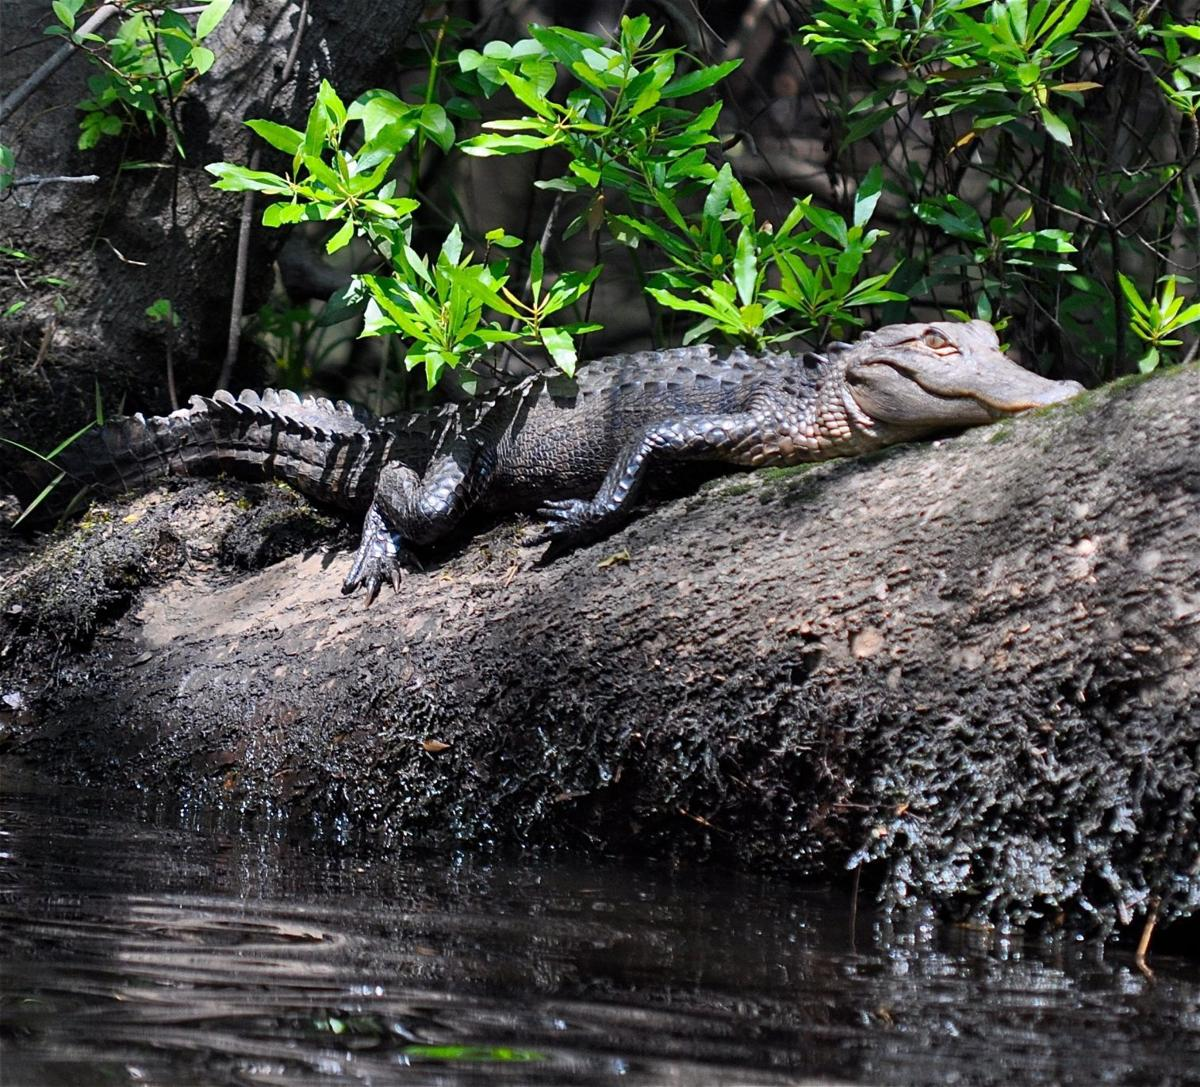 Floating gator carcasses raise hunting questions